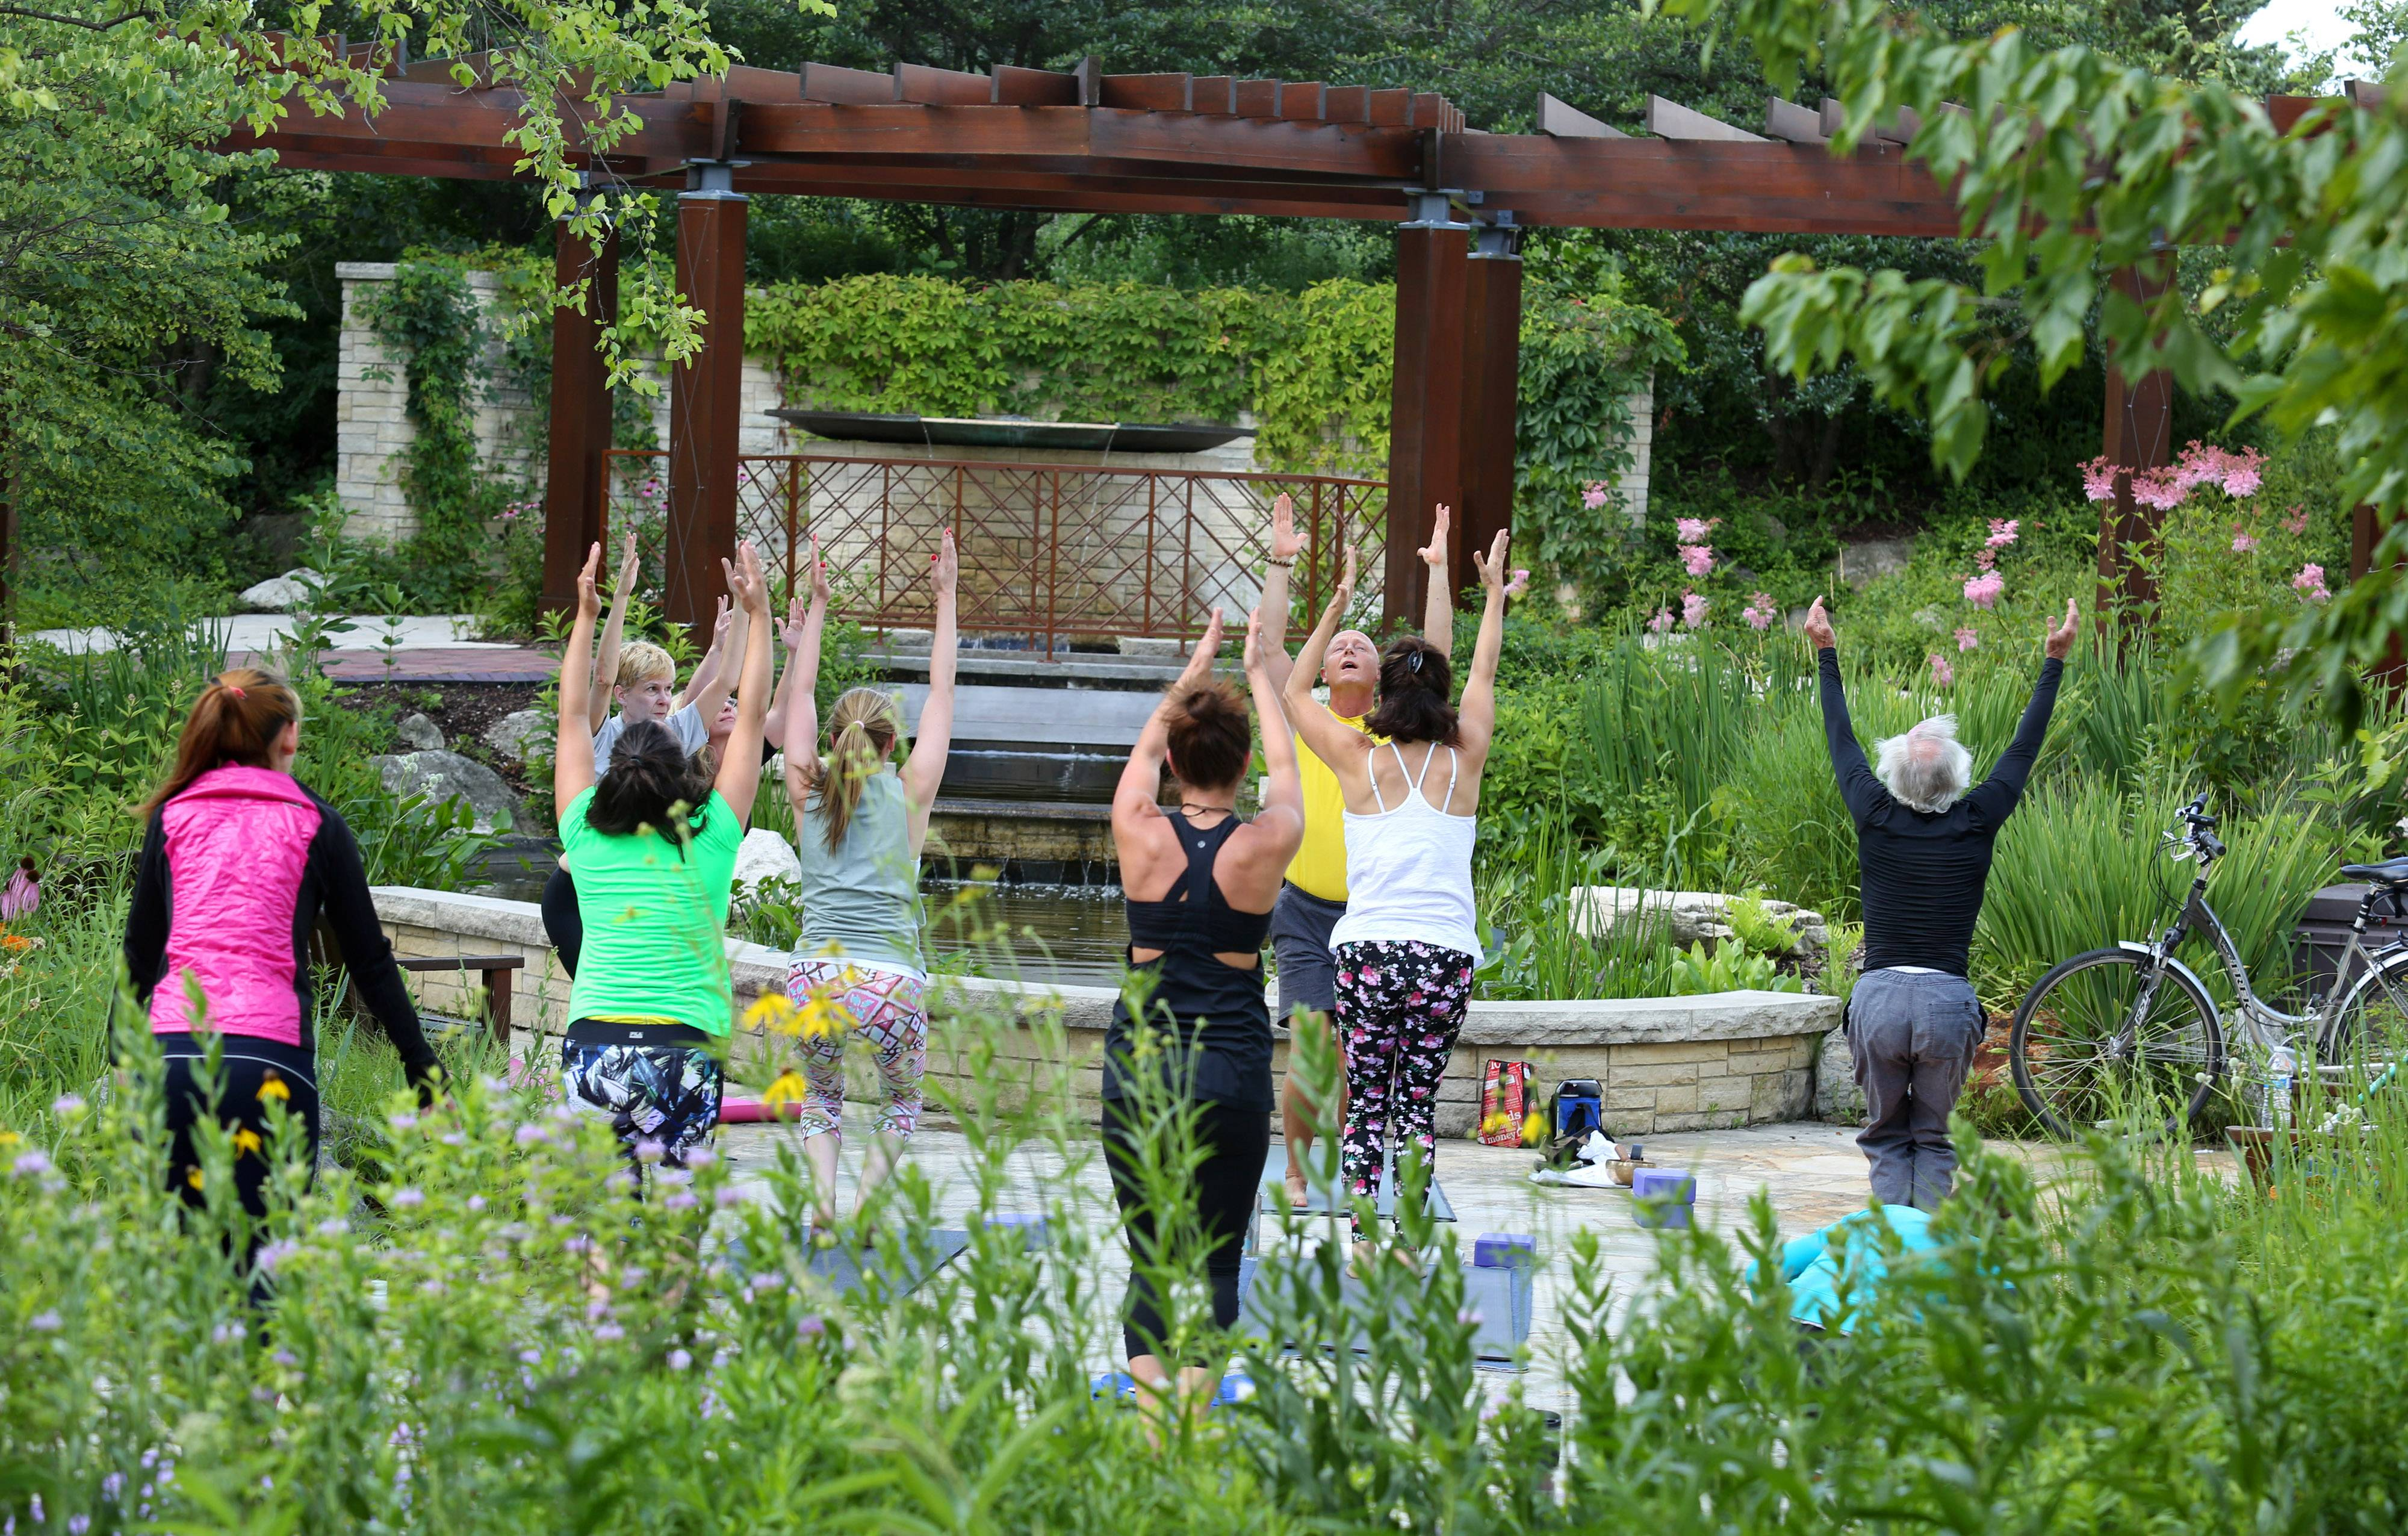 A free ashtanga yoga class is held for a second season in front of the water fountain in the native garden near Millennium Plaza at Independence Grove near Libertyville.